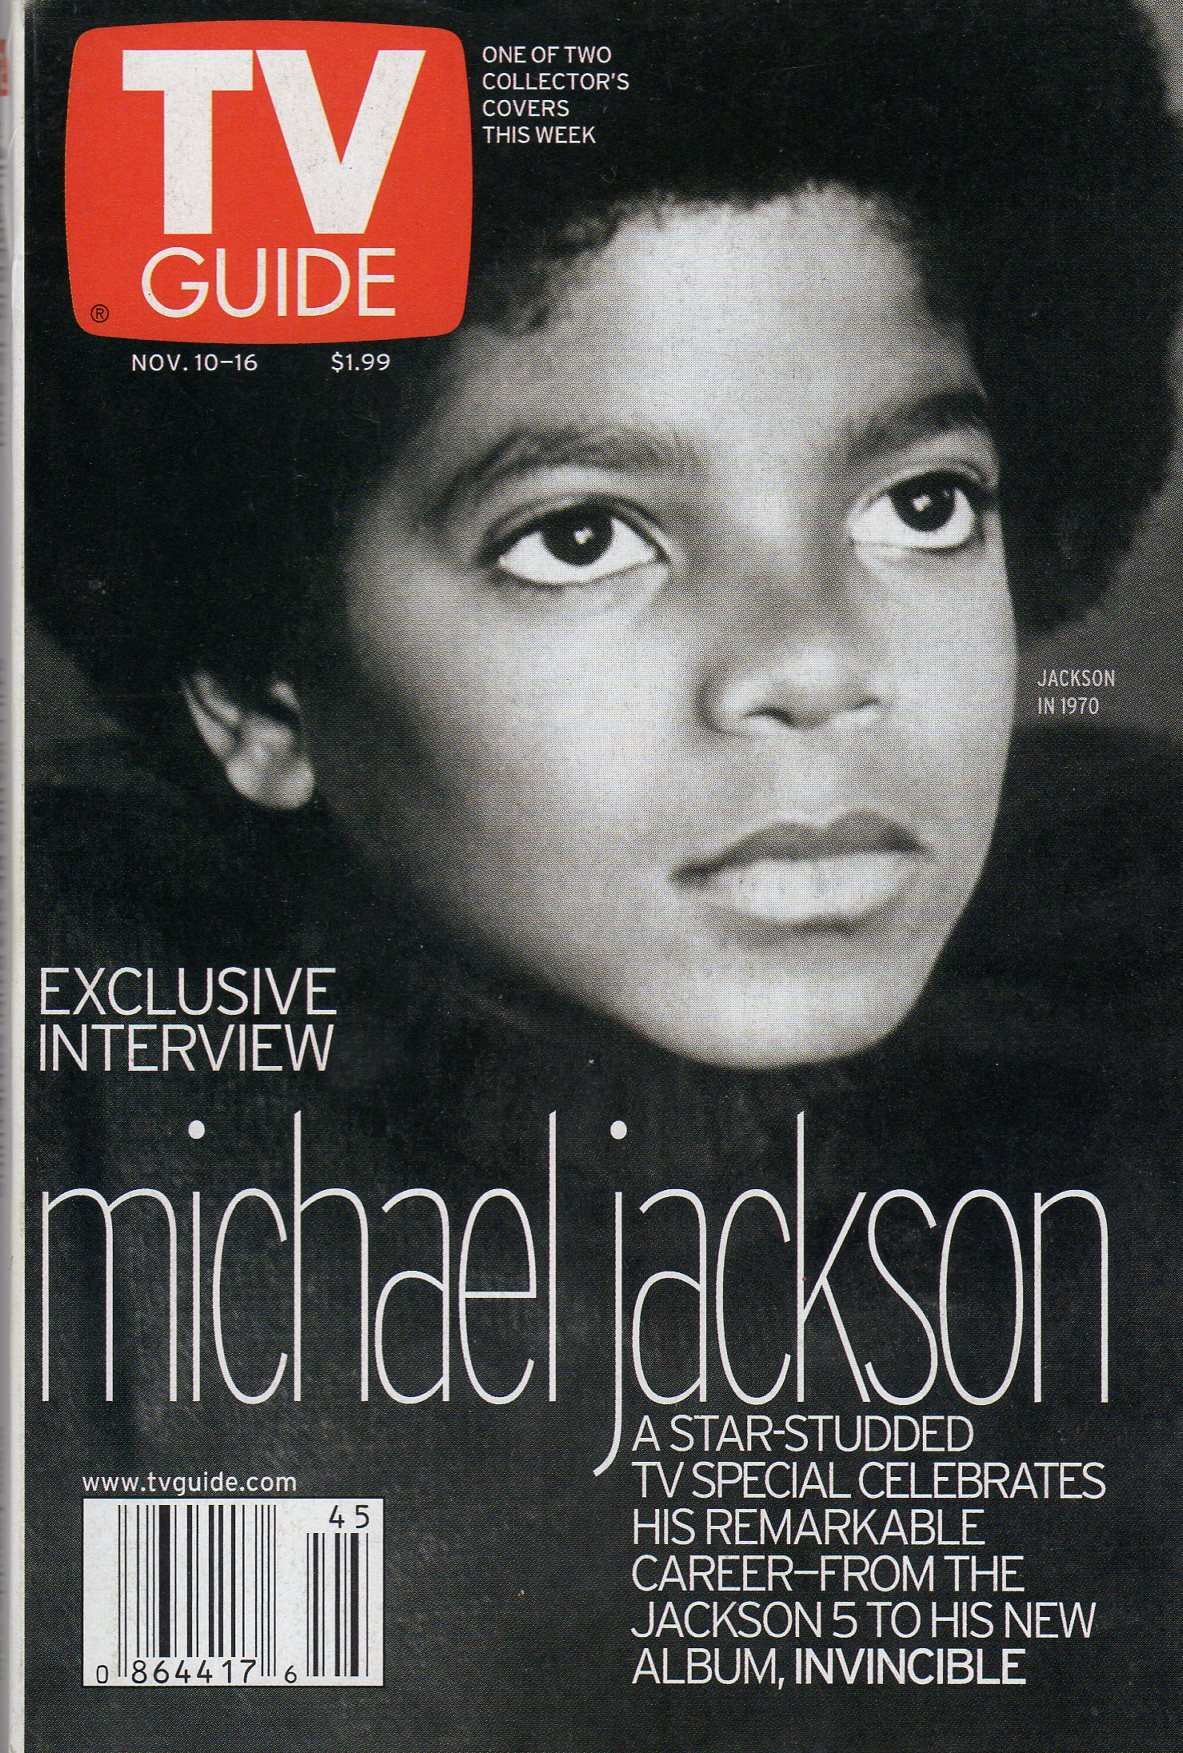 Tv Guide Magazine November 10-16 2001 (EXCLUSIVE INTERVIEW- MICHAEL JACKSON) pdf